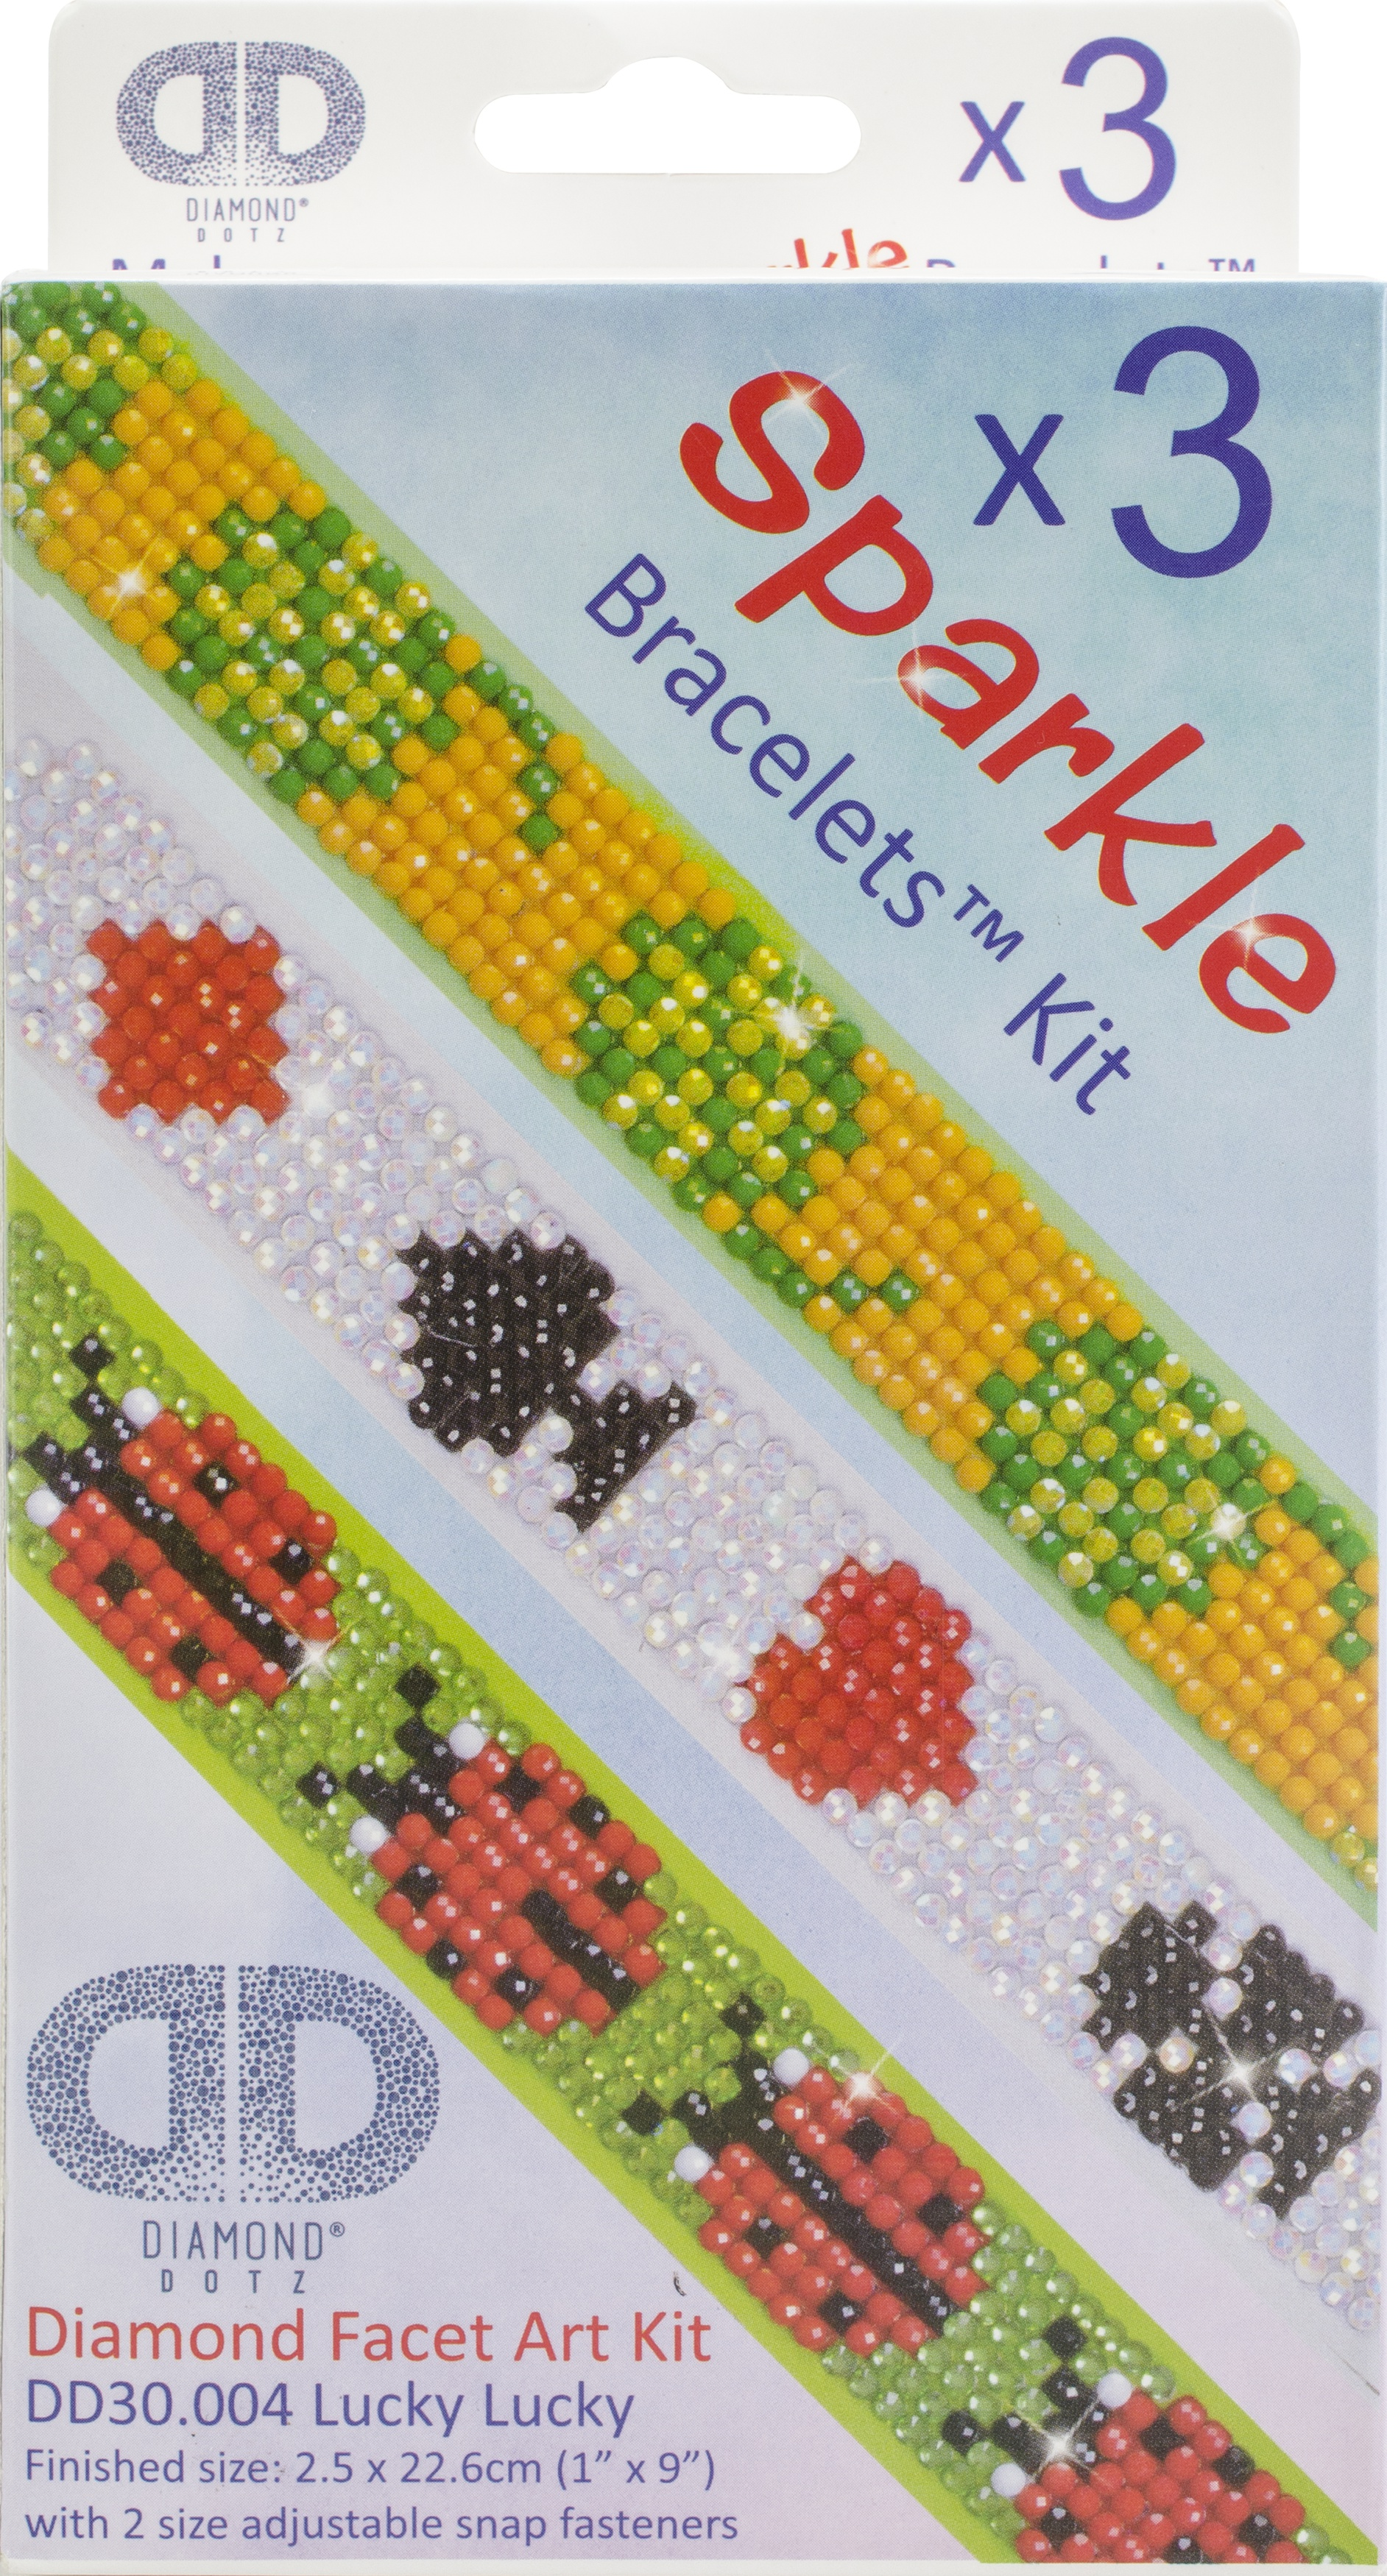 Diamond Dotz Diamond Bracelets Facet Art Kit 1X9-Assorted Lucky Lucky 3/Pkg